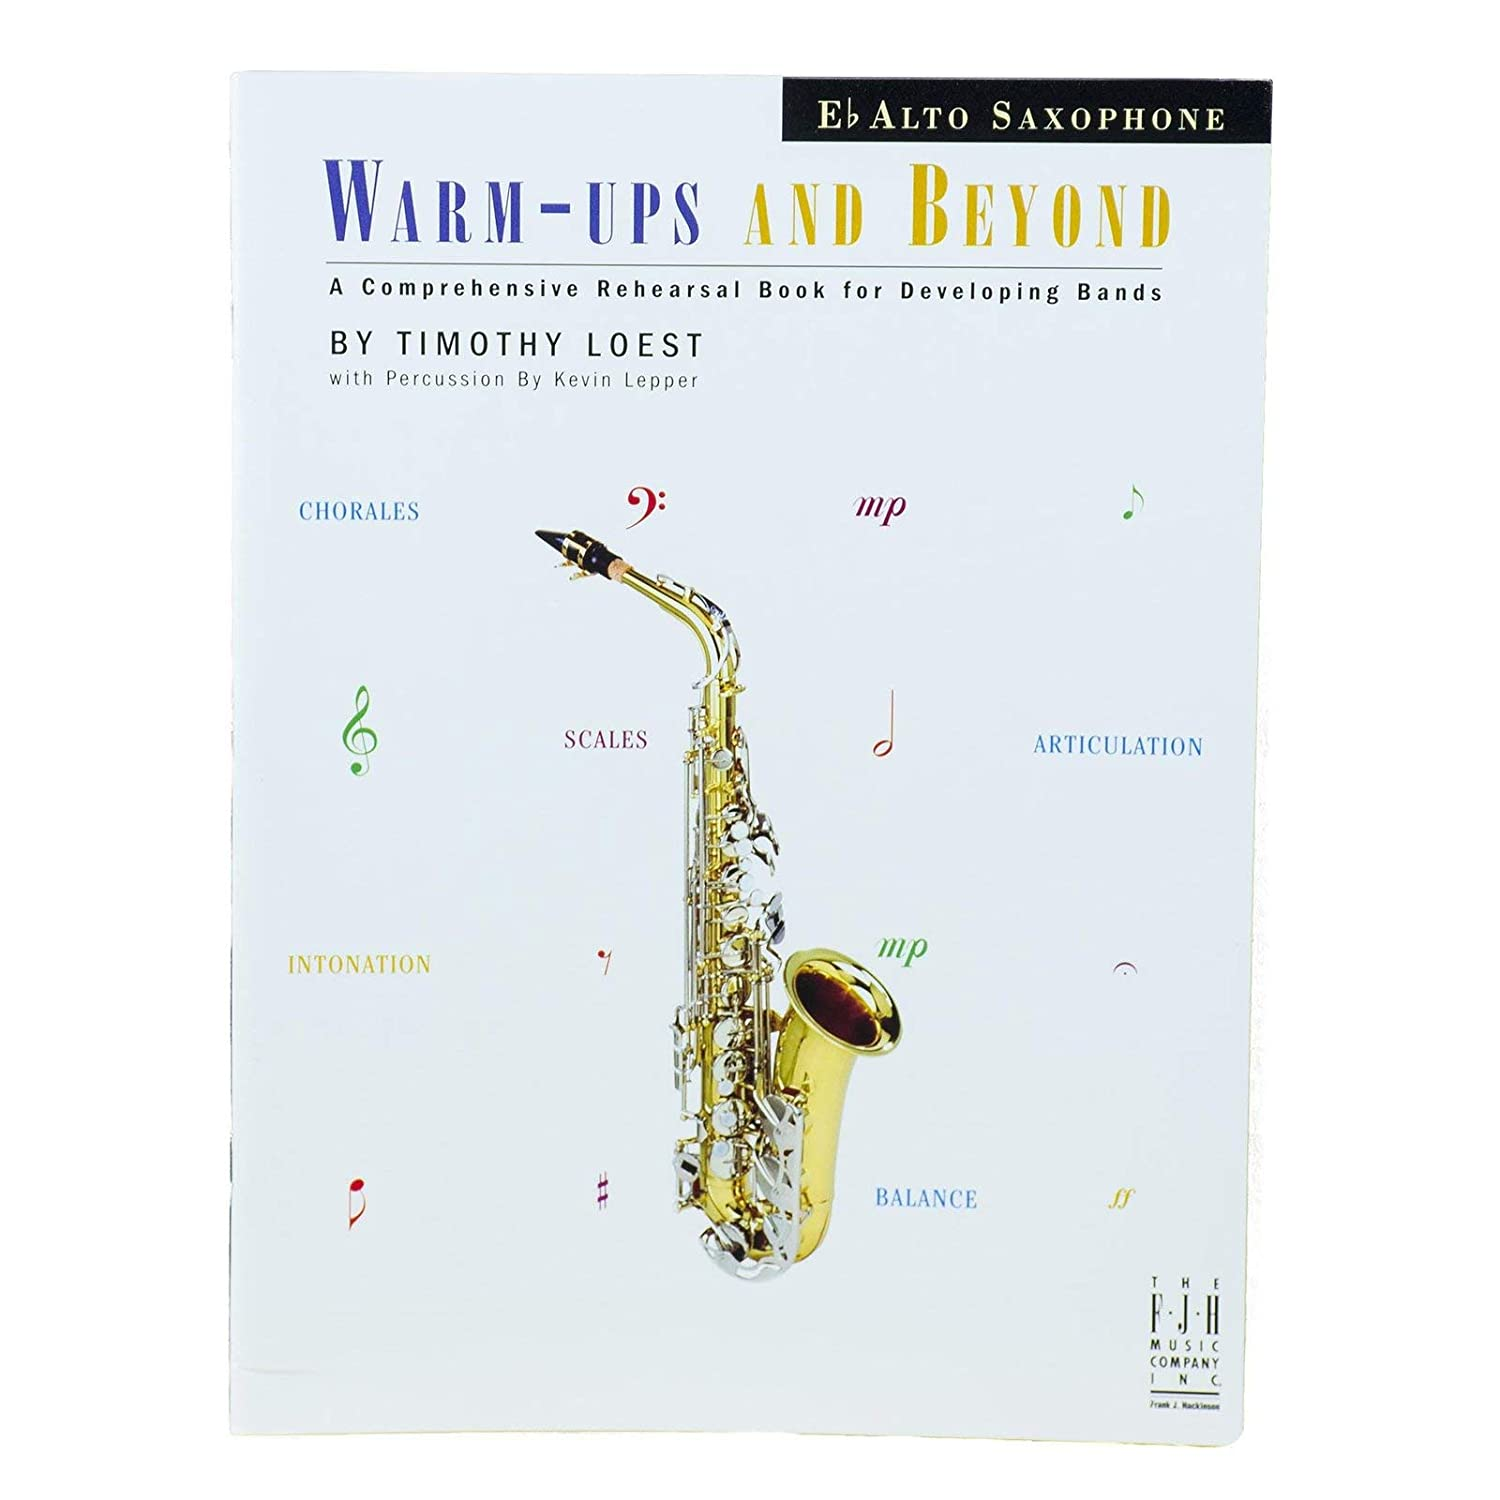 Warm-Ups And Beyond - Alto Saxophone Kevin Lepper Timothy Loest FJH Music Company